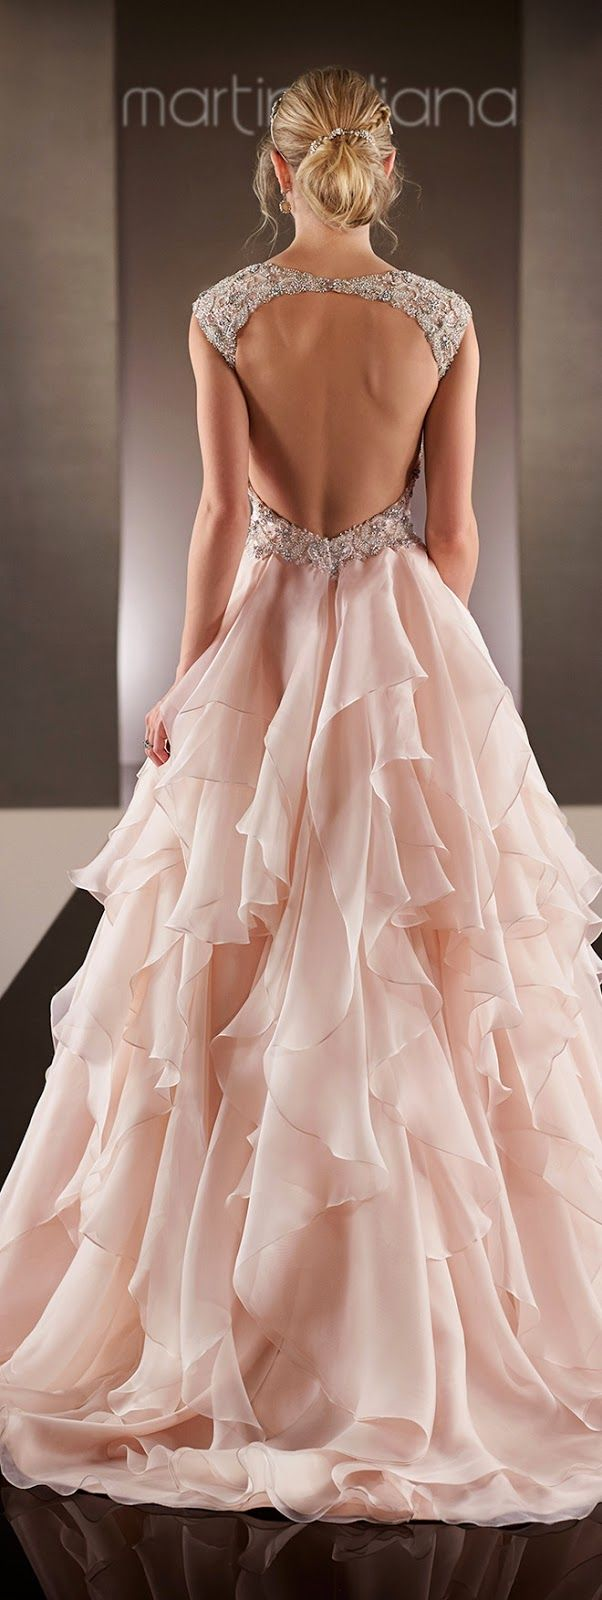 pink-wedding-ideas-21-12042015-km